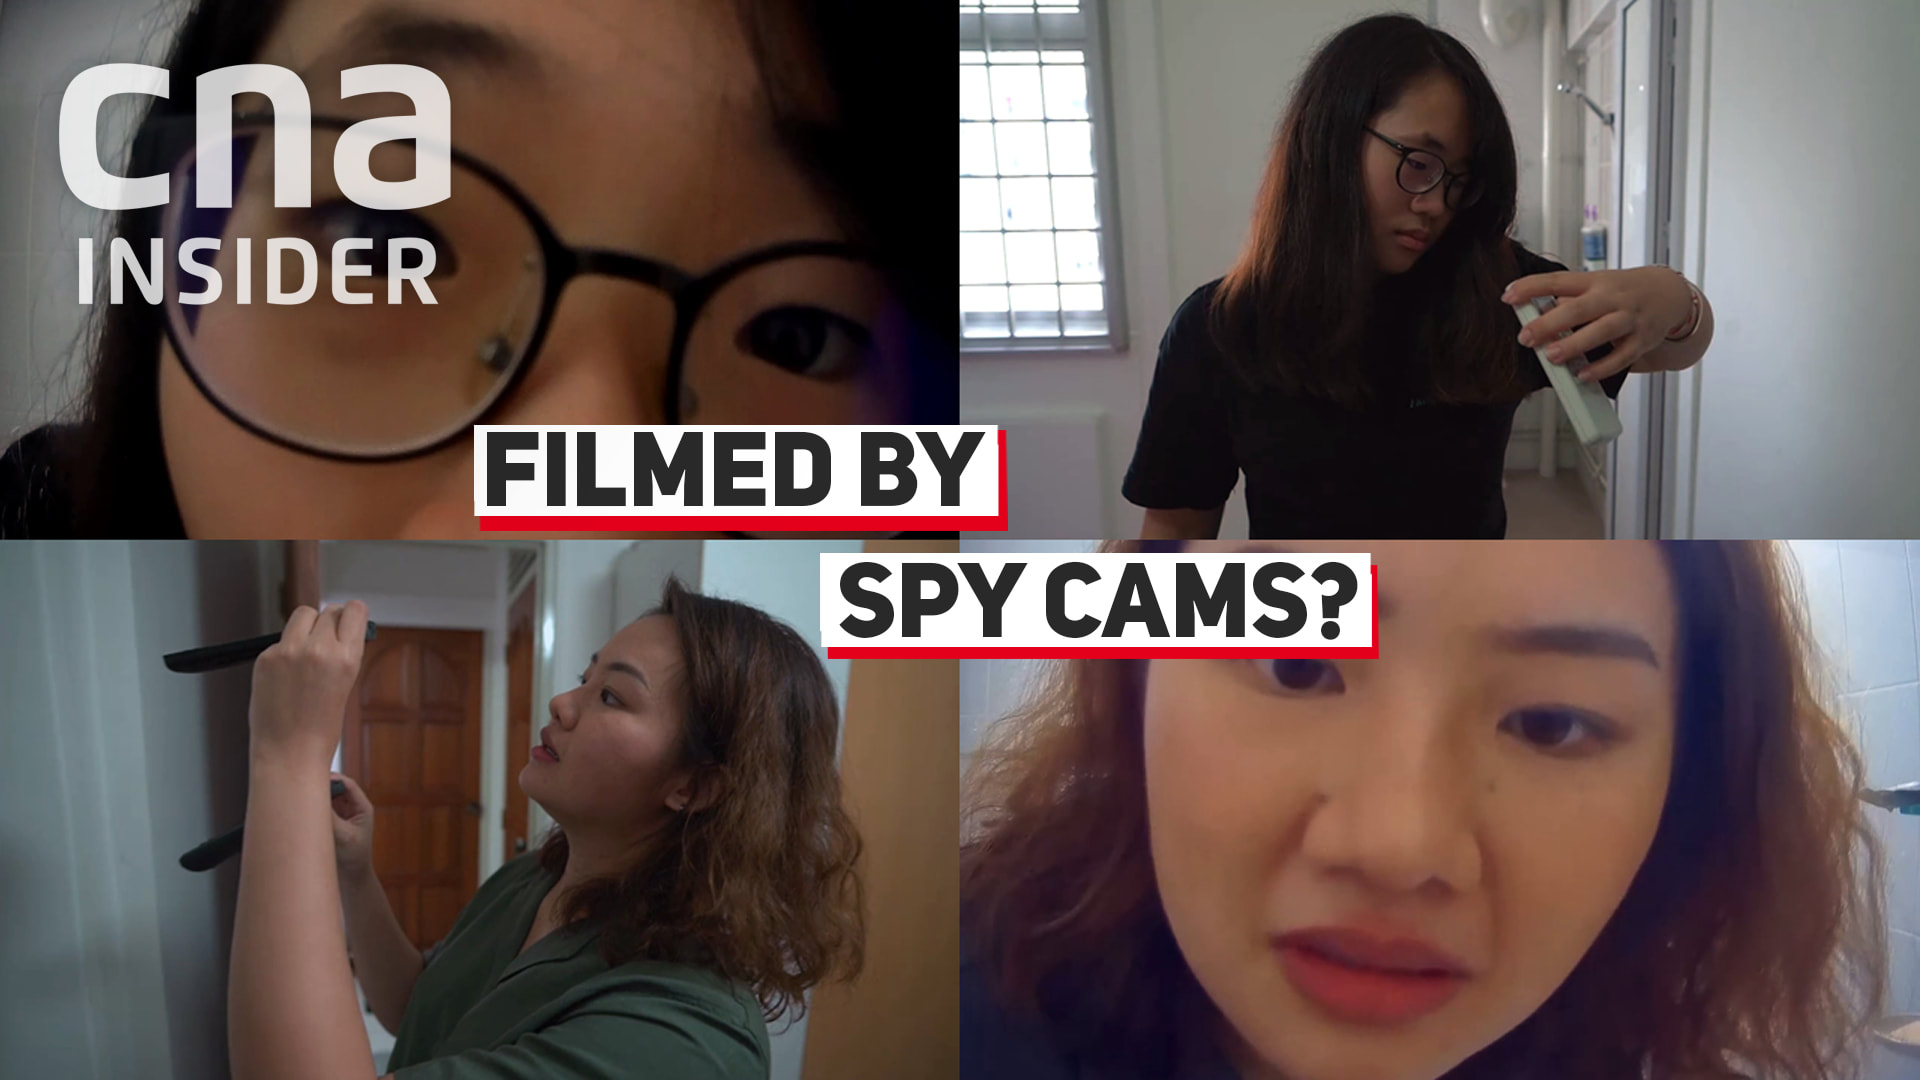 What to do if you've been secretly filmed?